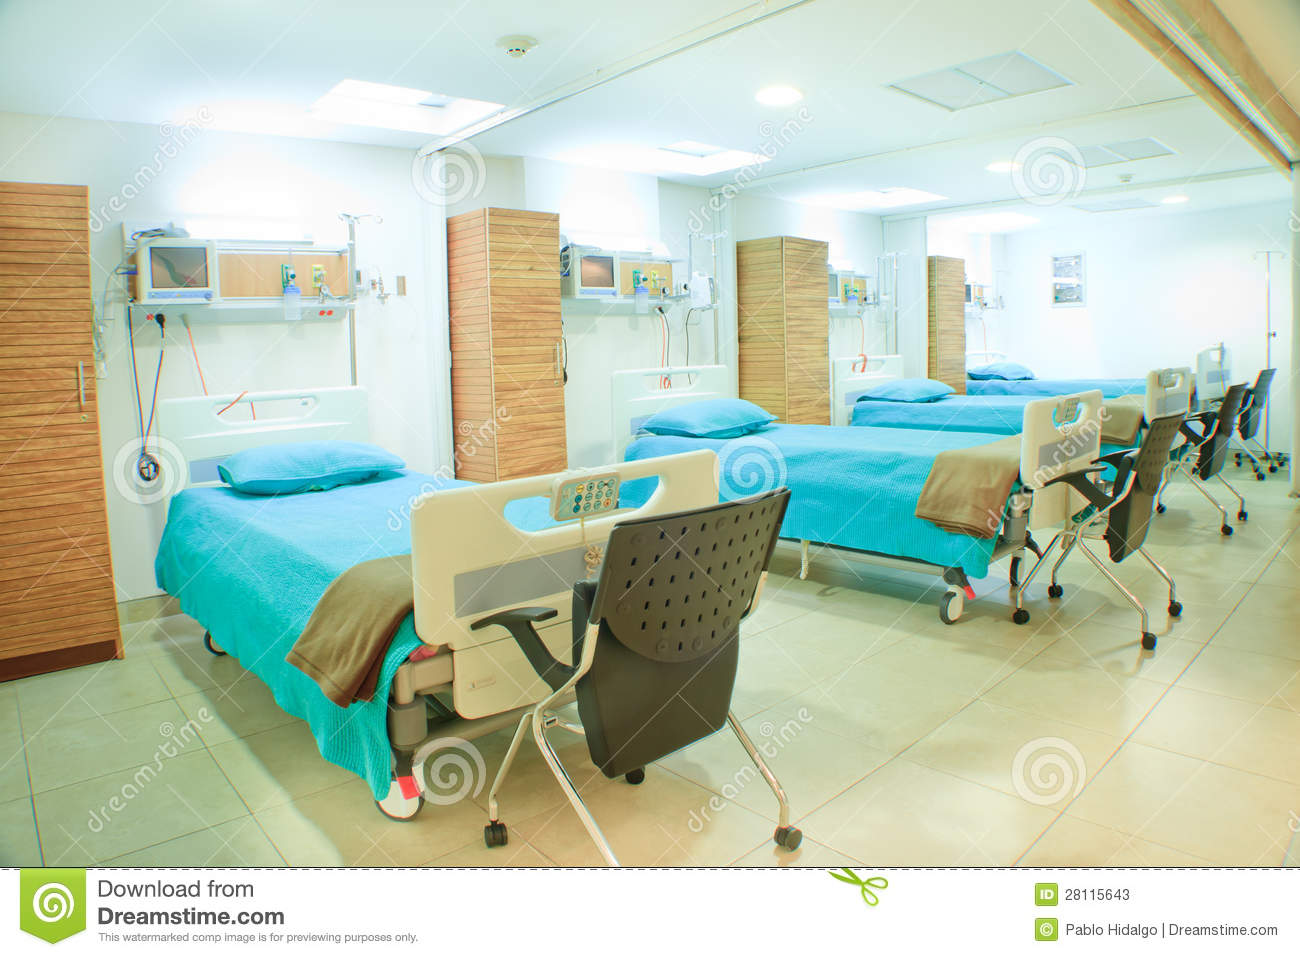 Modern Hospital Room stock image. Image of operating - 44958745